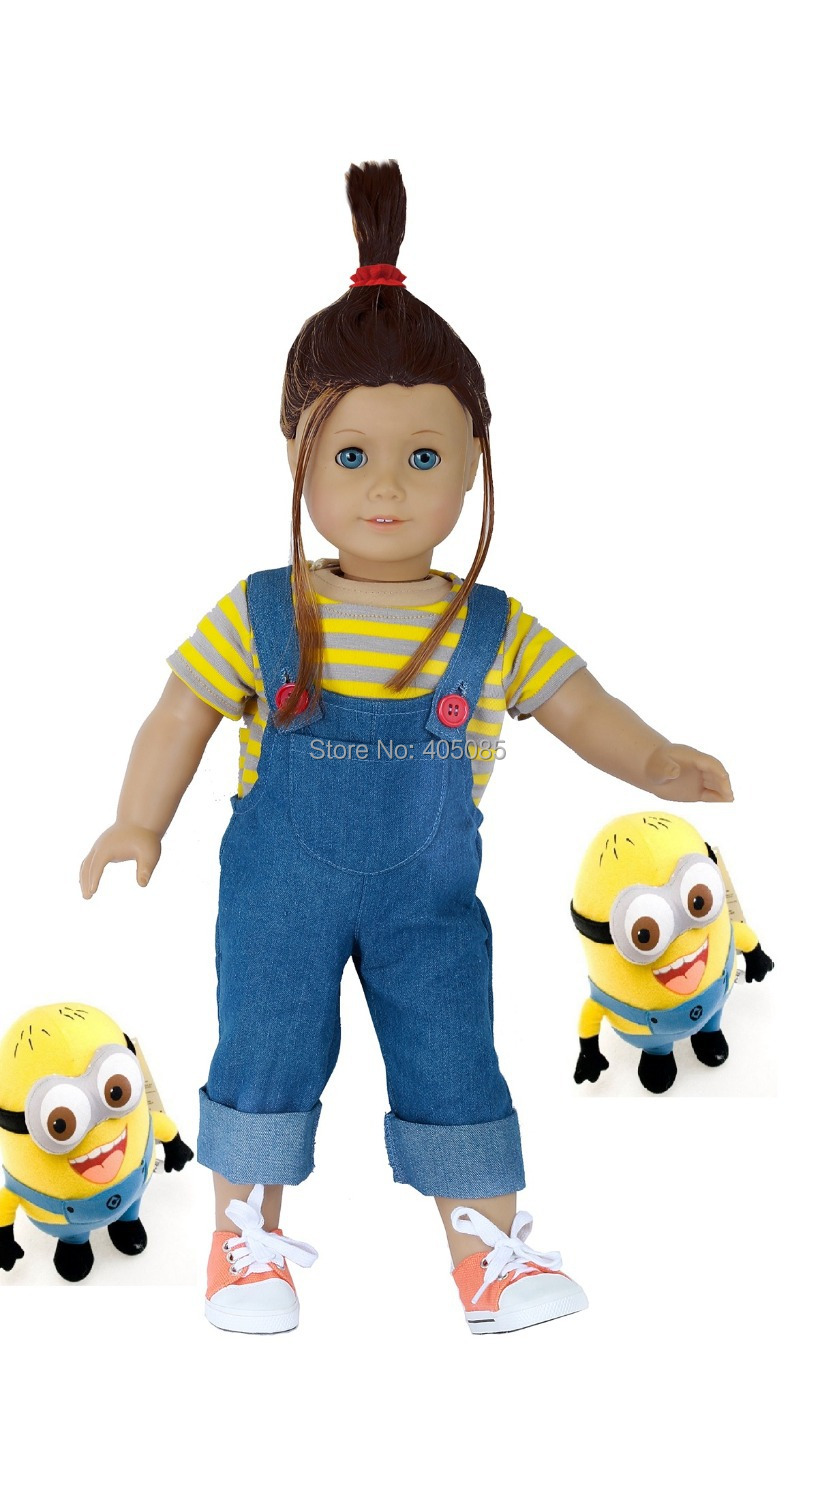 Us 13 99 Handmade Despicable Me Agnes Jeans T Shirt And Shoes Fits 18 Doll Like American Girl Doll Clothes In Dolls Accessories From Toys Hobbies